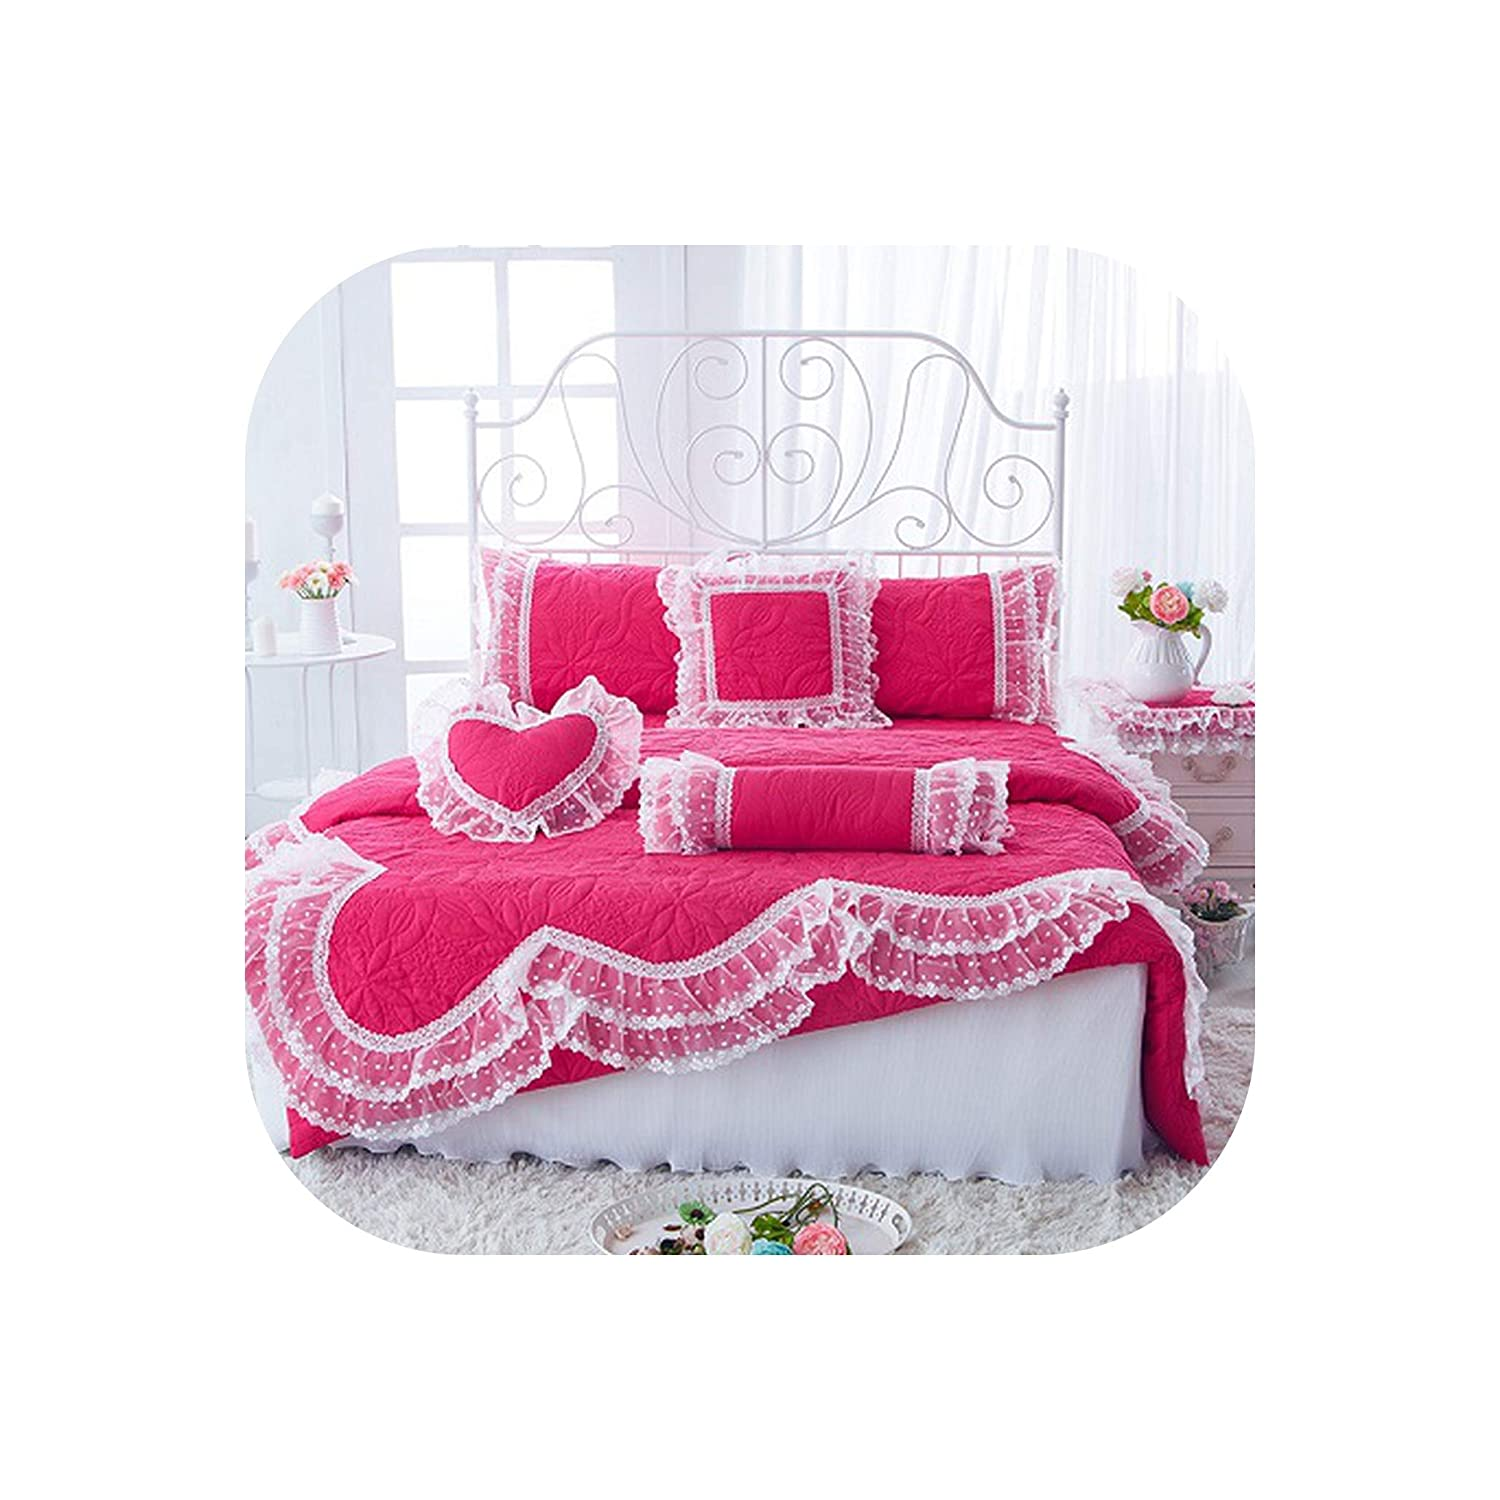 YY Cherry 100% Cotton Thick Quilted Lace Bedding Set King Queen Twin Size Bed Set Princess Korean Girls White Pink Bed Skirt Set Pillowcase,Rose Bed Set,Queen B 4Pcs